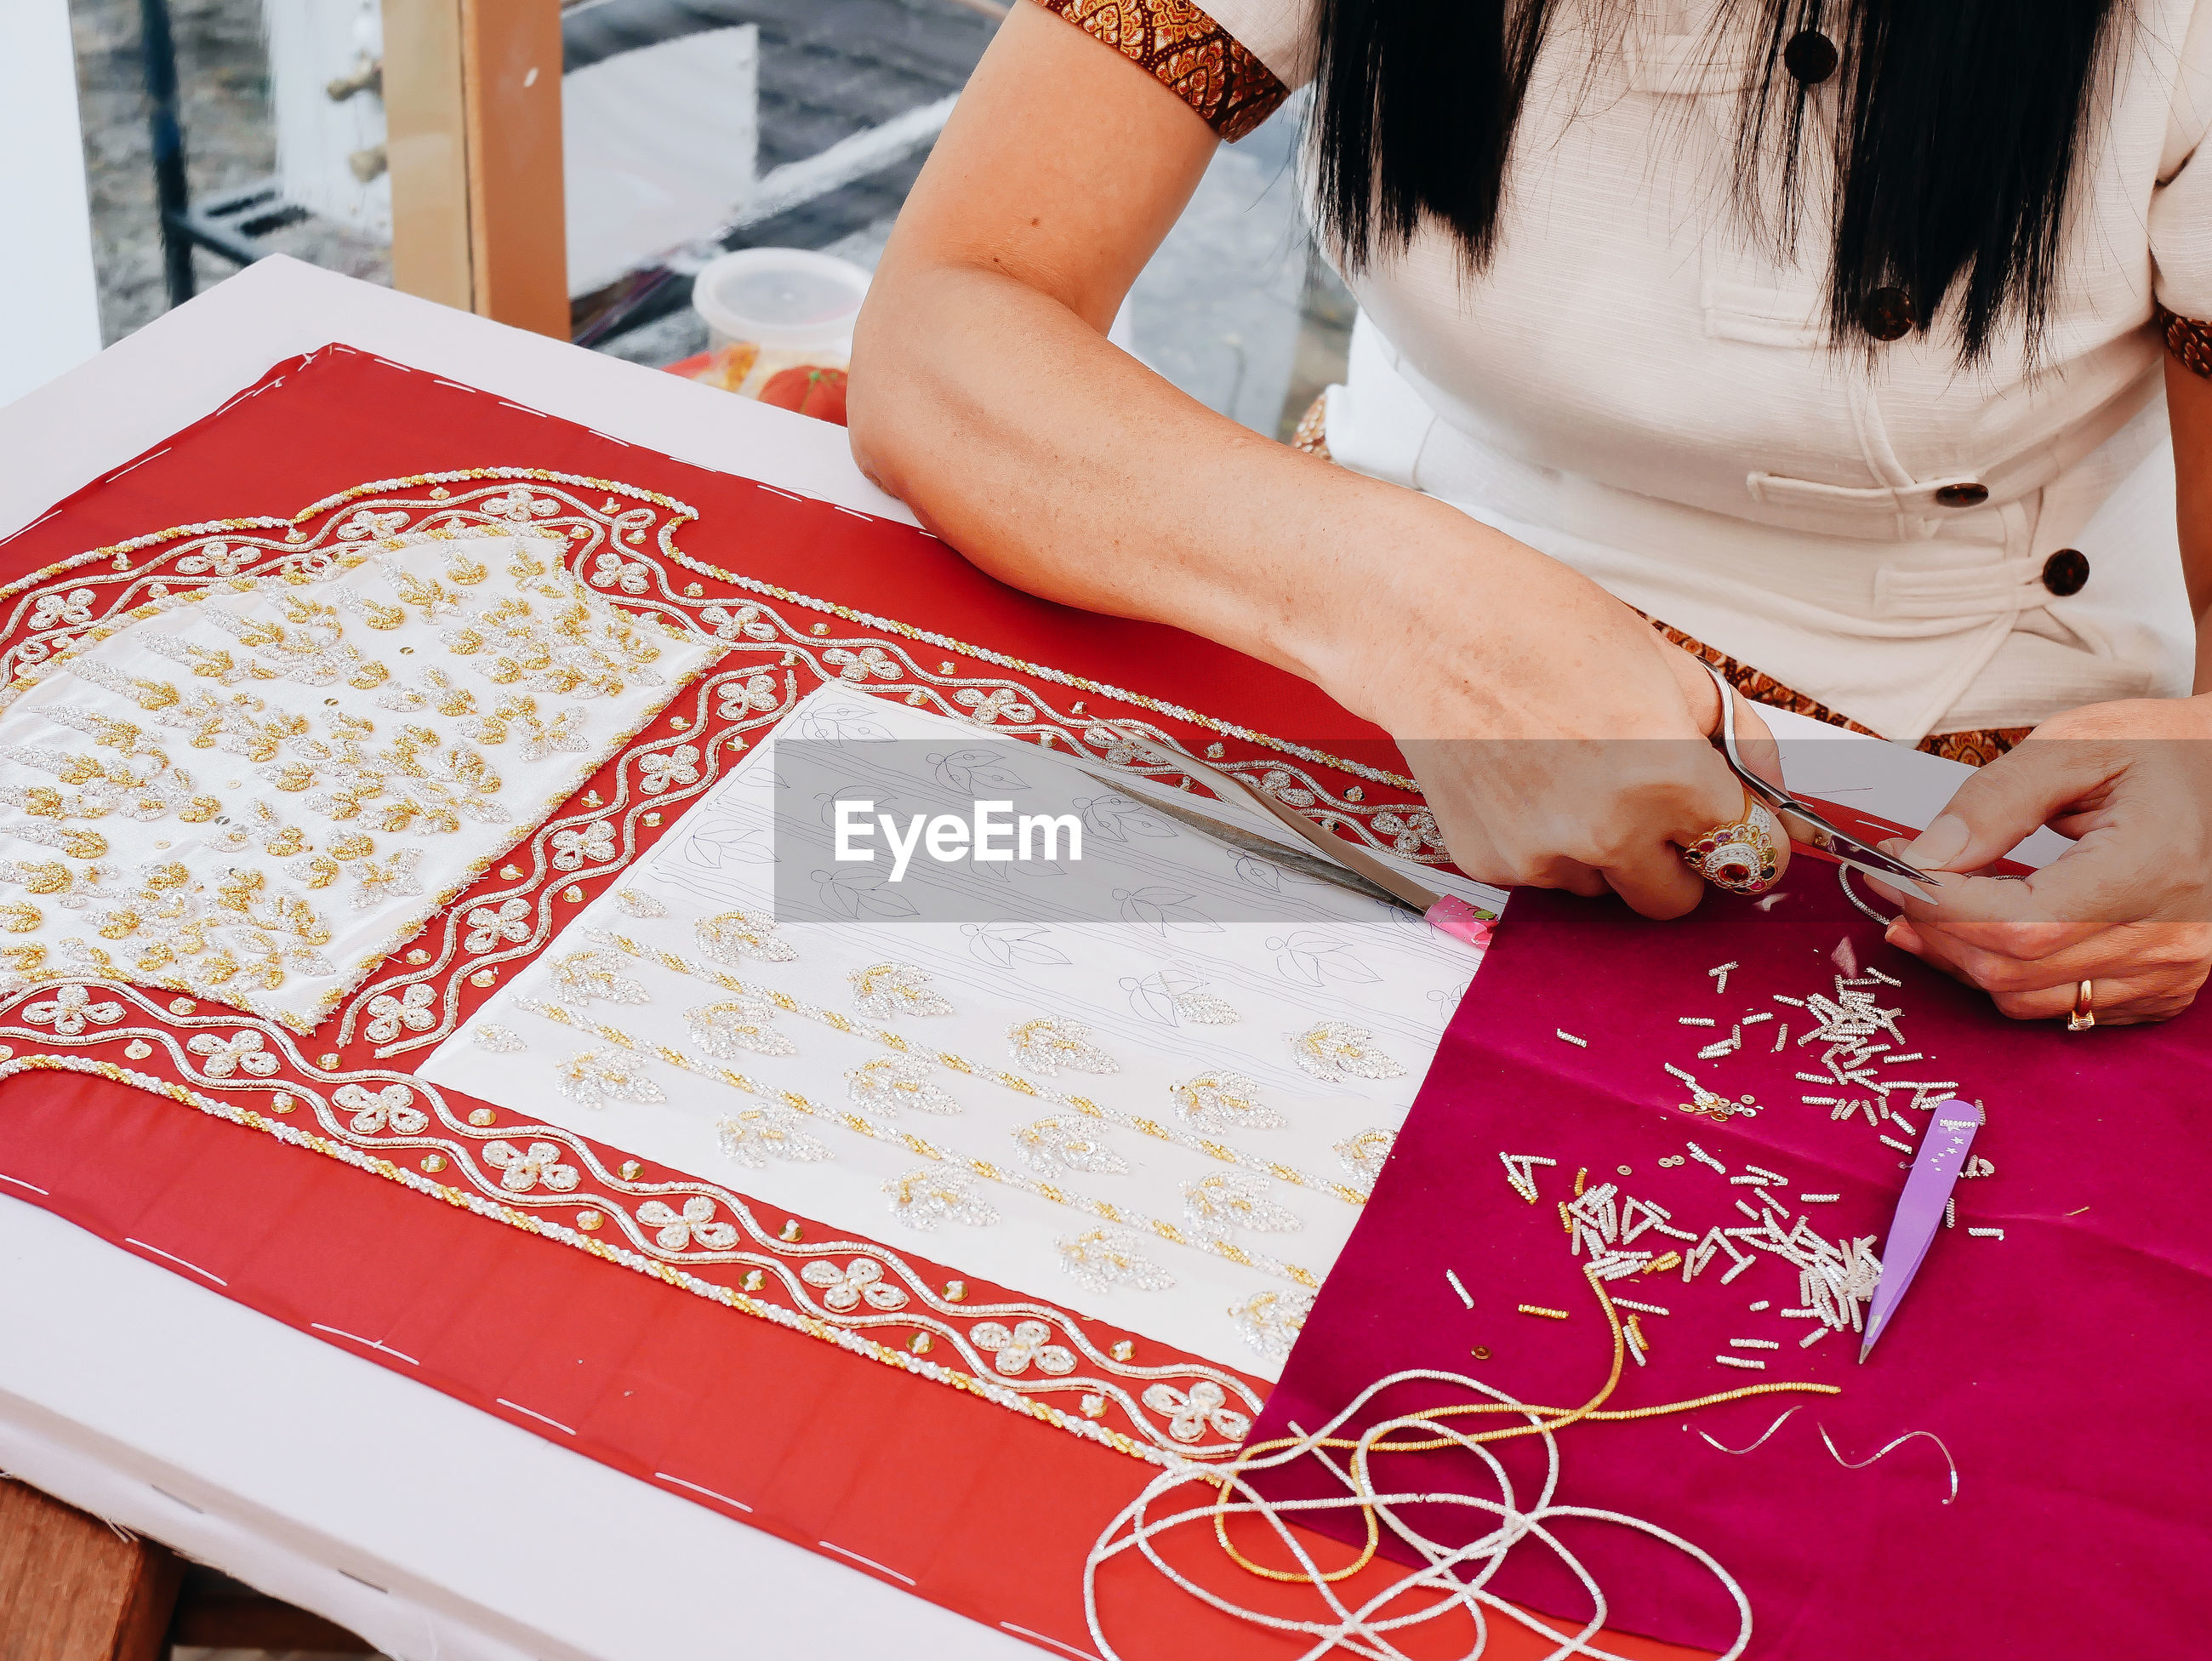 Midsection of woman embroidering jewelry